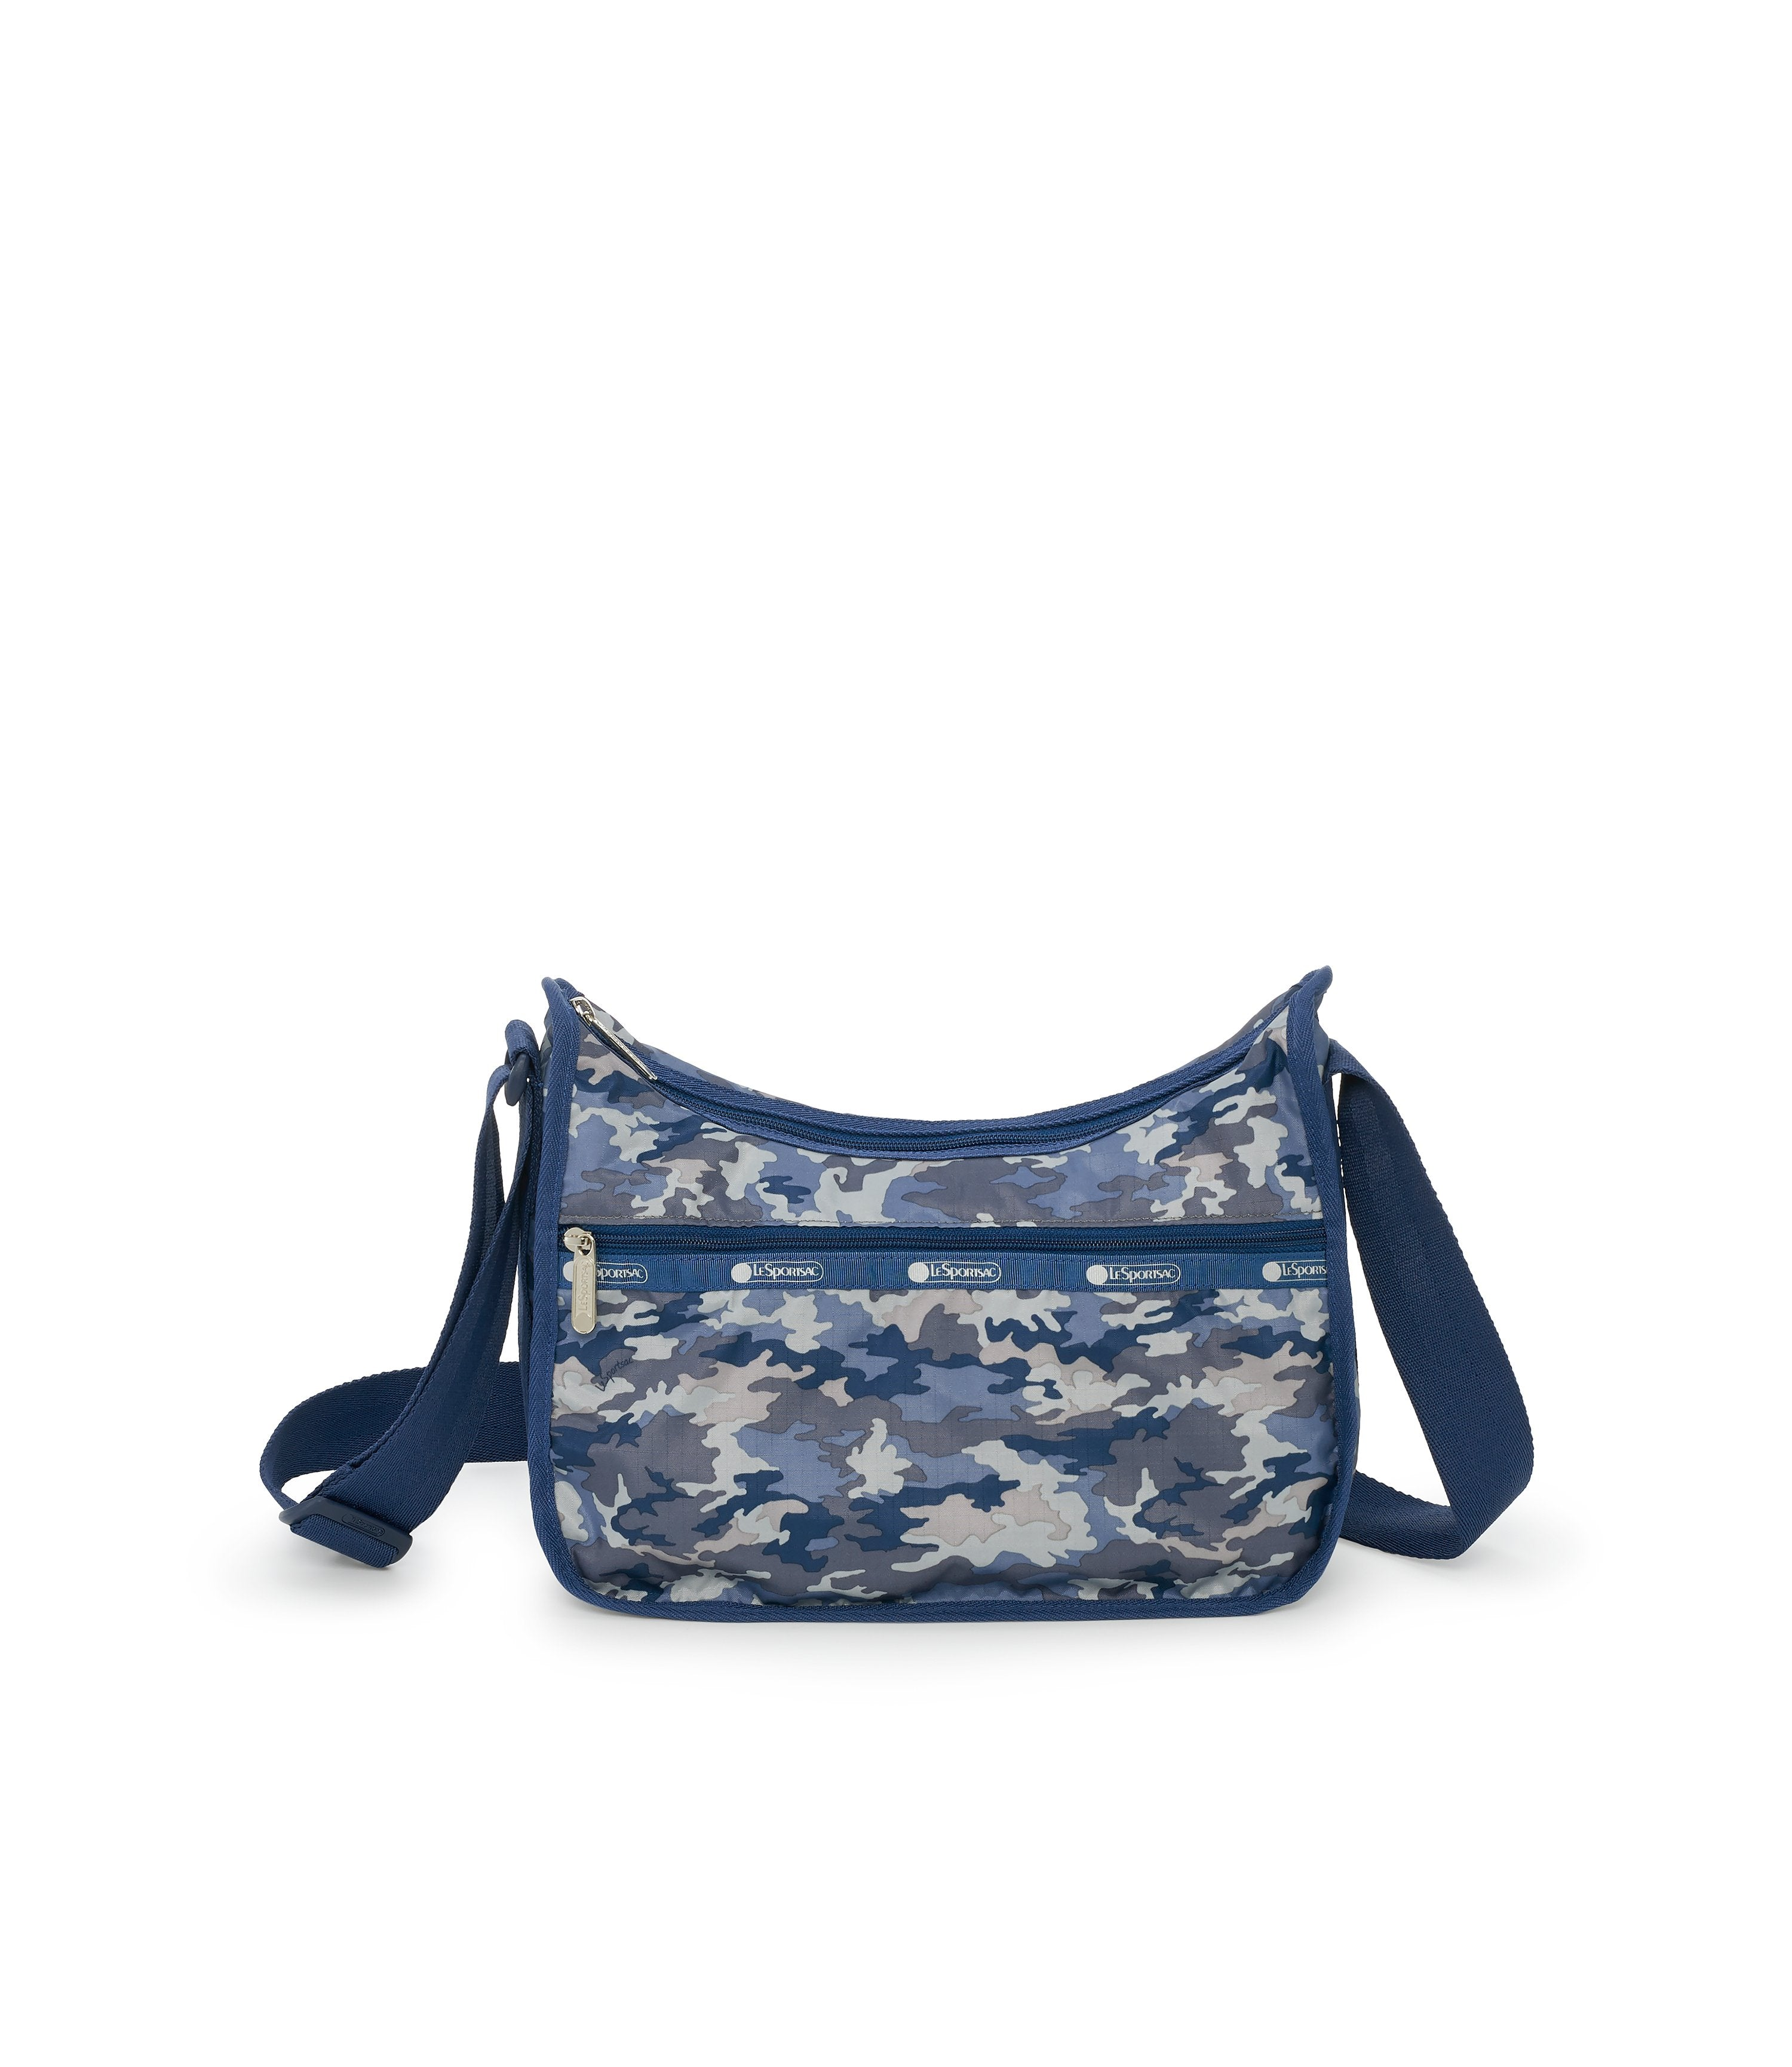 Classic Hobo, Nylon Handbags and Classic Purses, LeSportsac, Camo Blues print